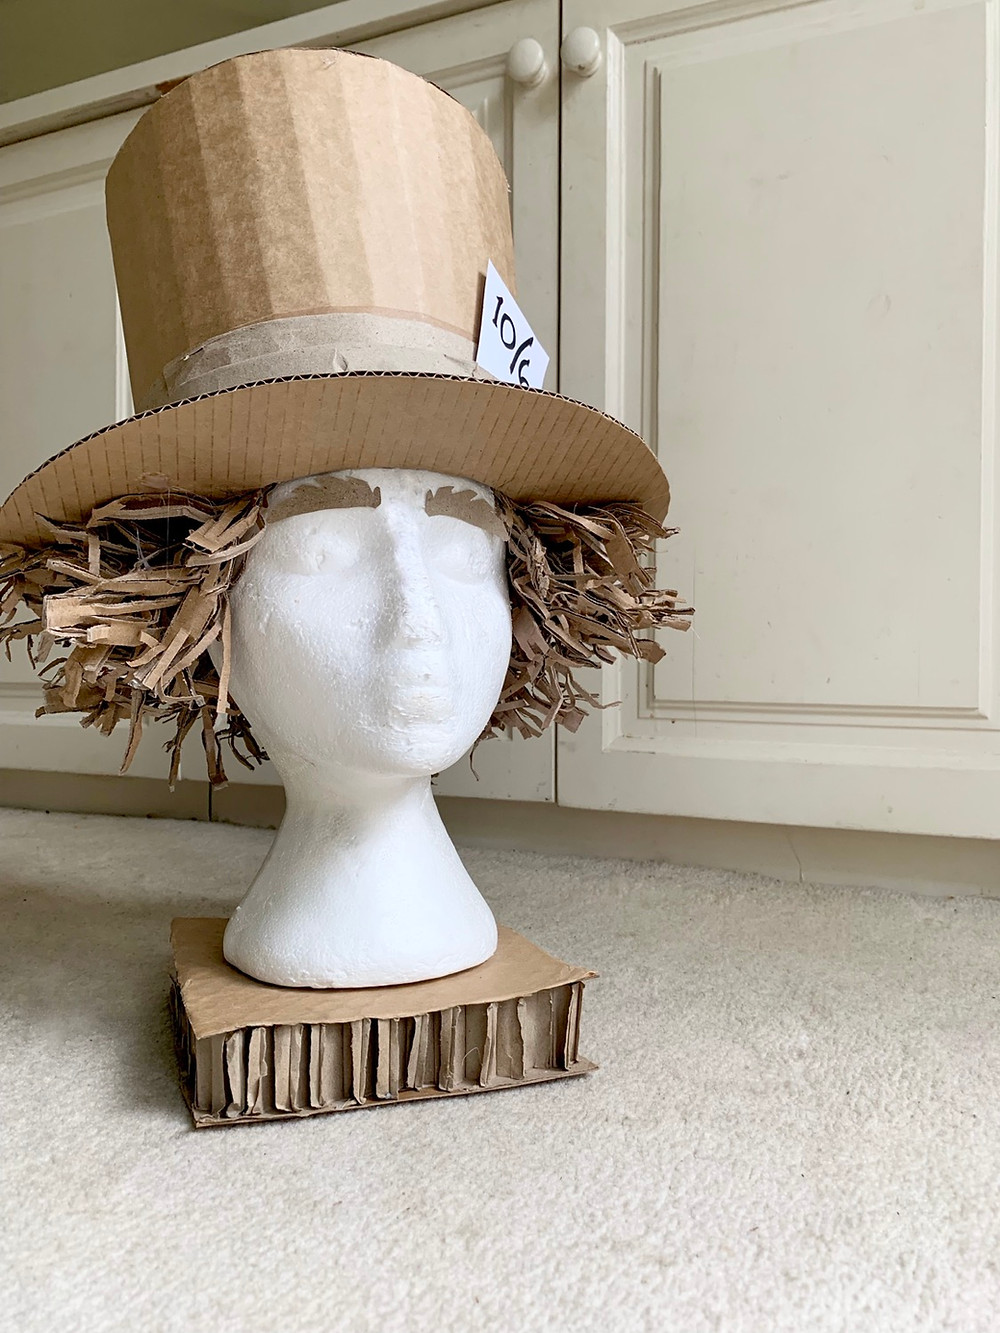 Cardboard Mad hatter costume hat made from up cycled material